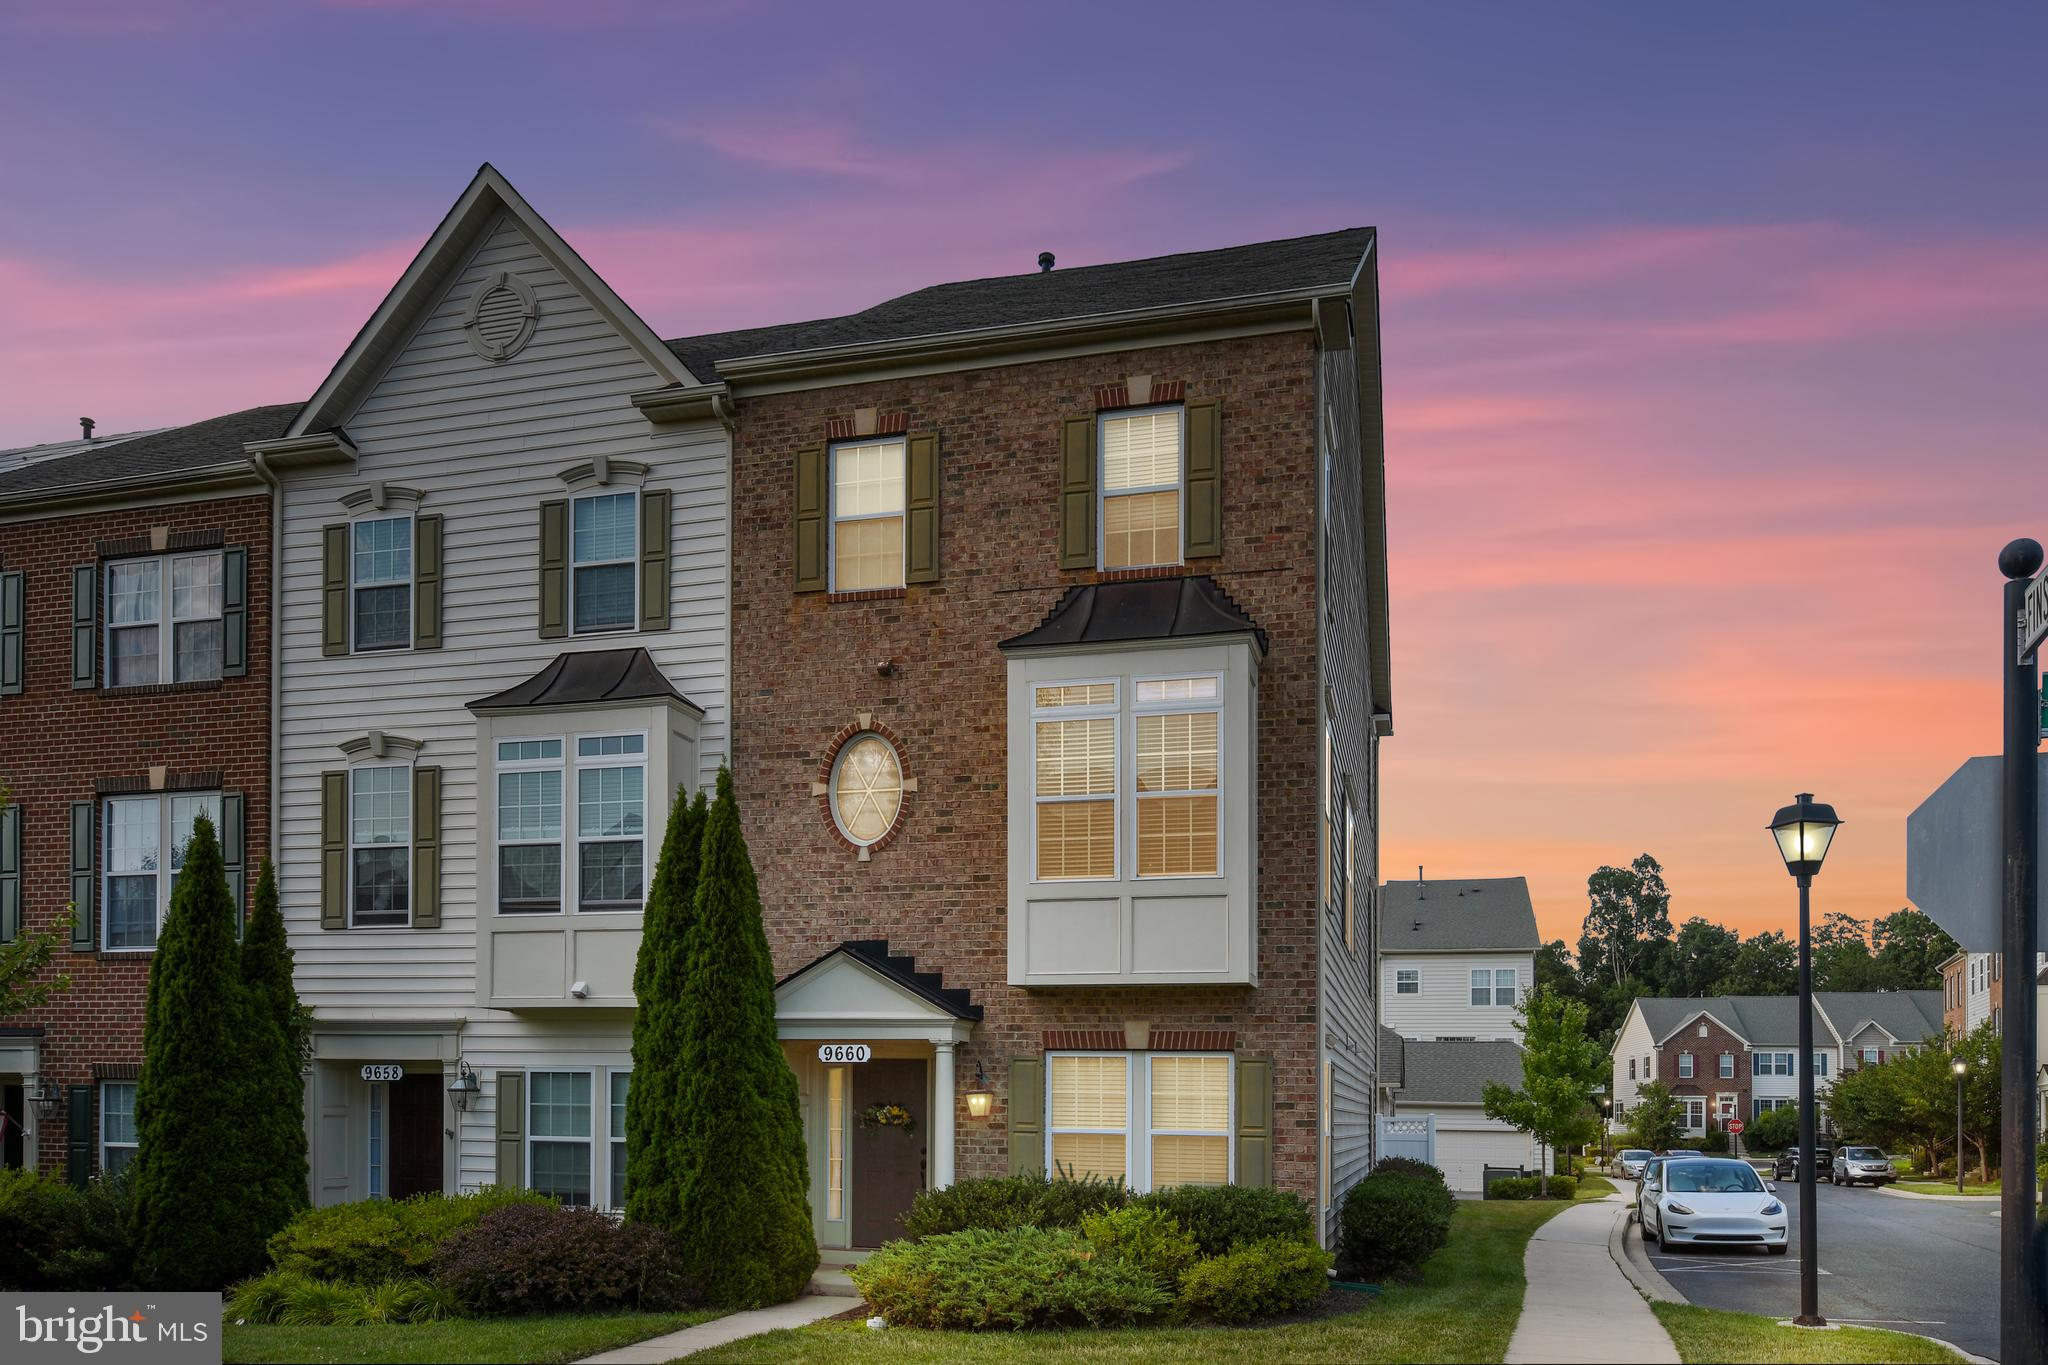 Gorgeous 3 story townhouse w/ 3,000+ sf ft! Gourmet kitchen w/ granite counters, hrdwds & center isl